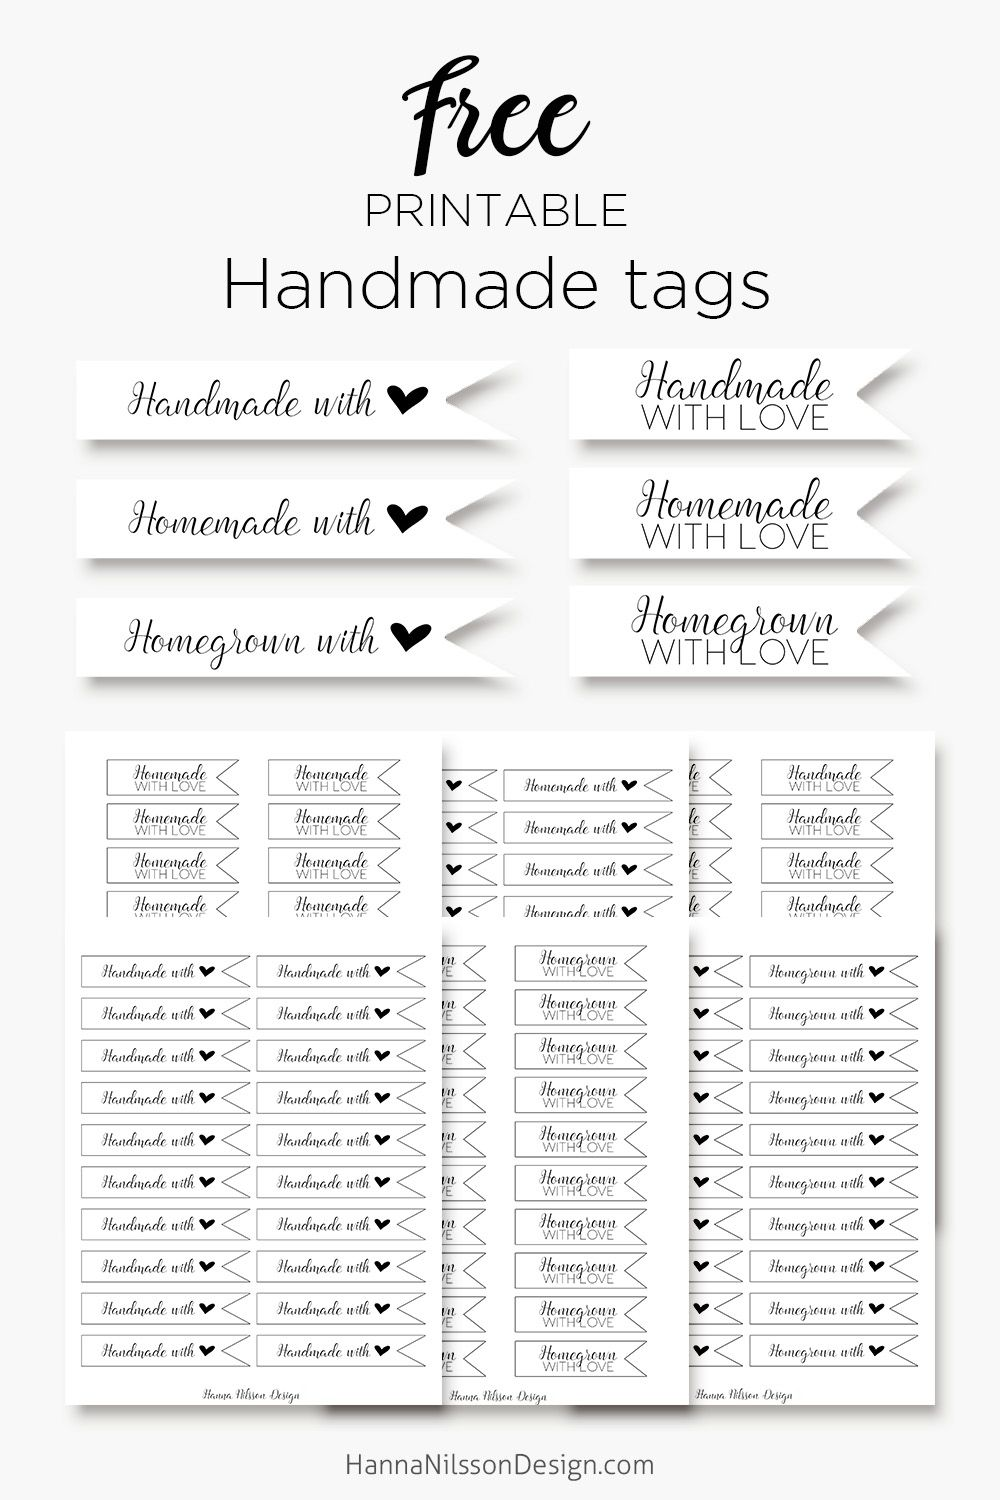 Homemade, handmade and homegrown - with love Tags - FREE printables ...